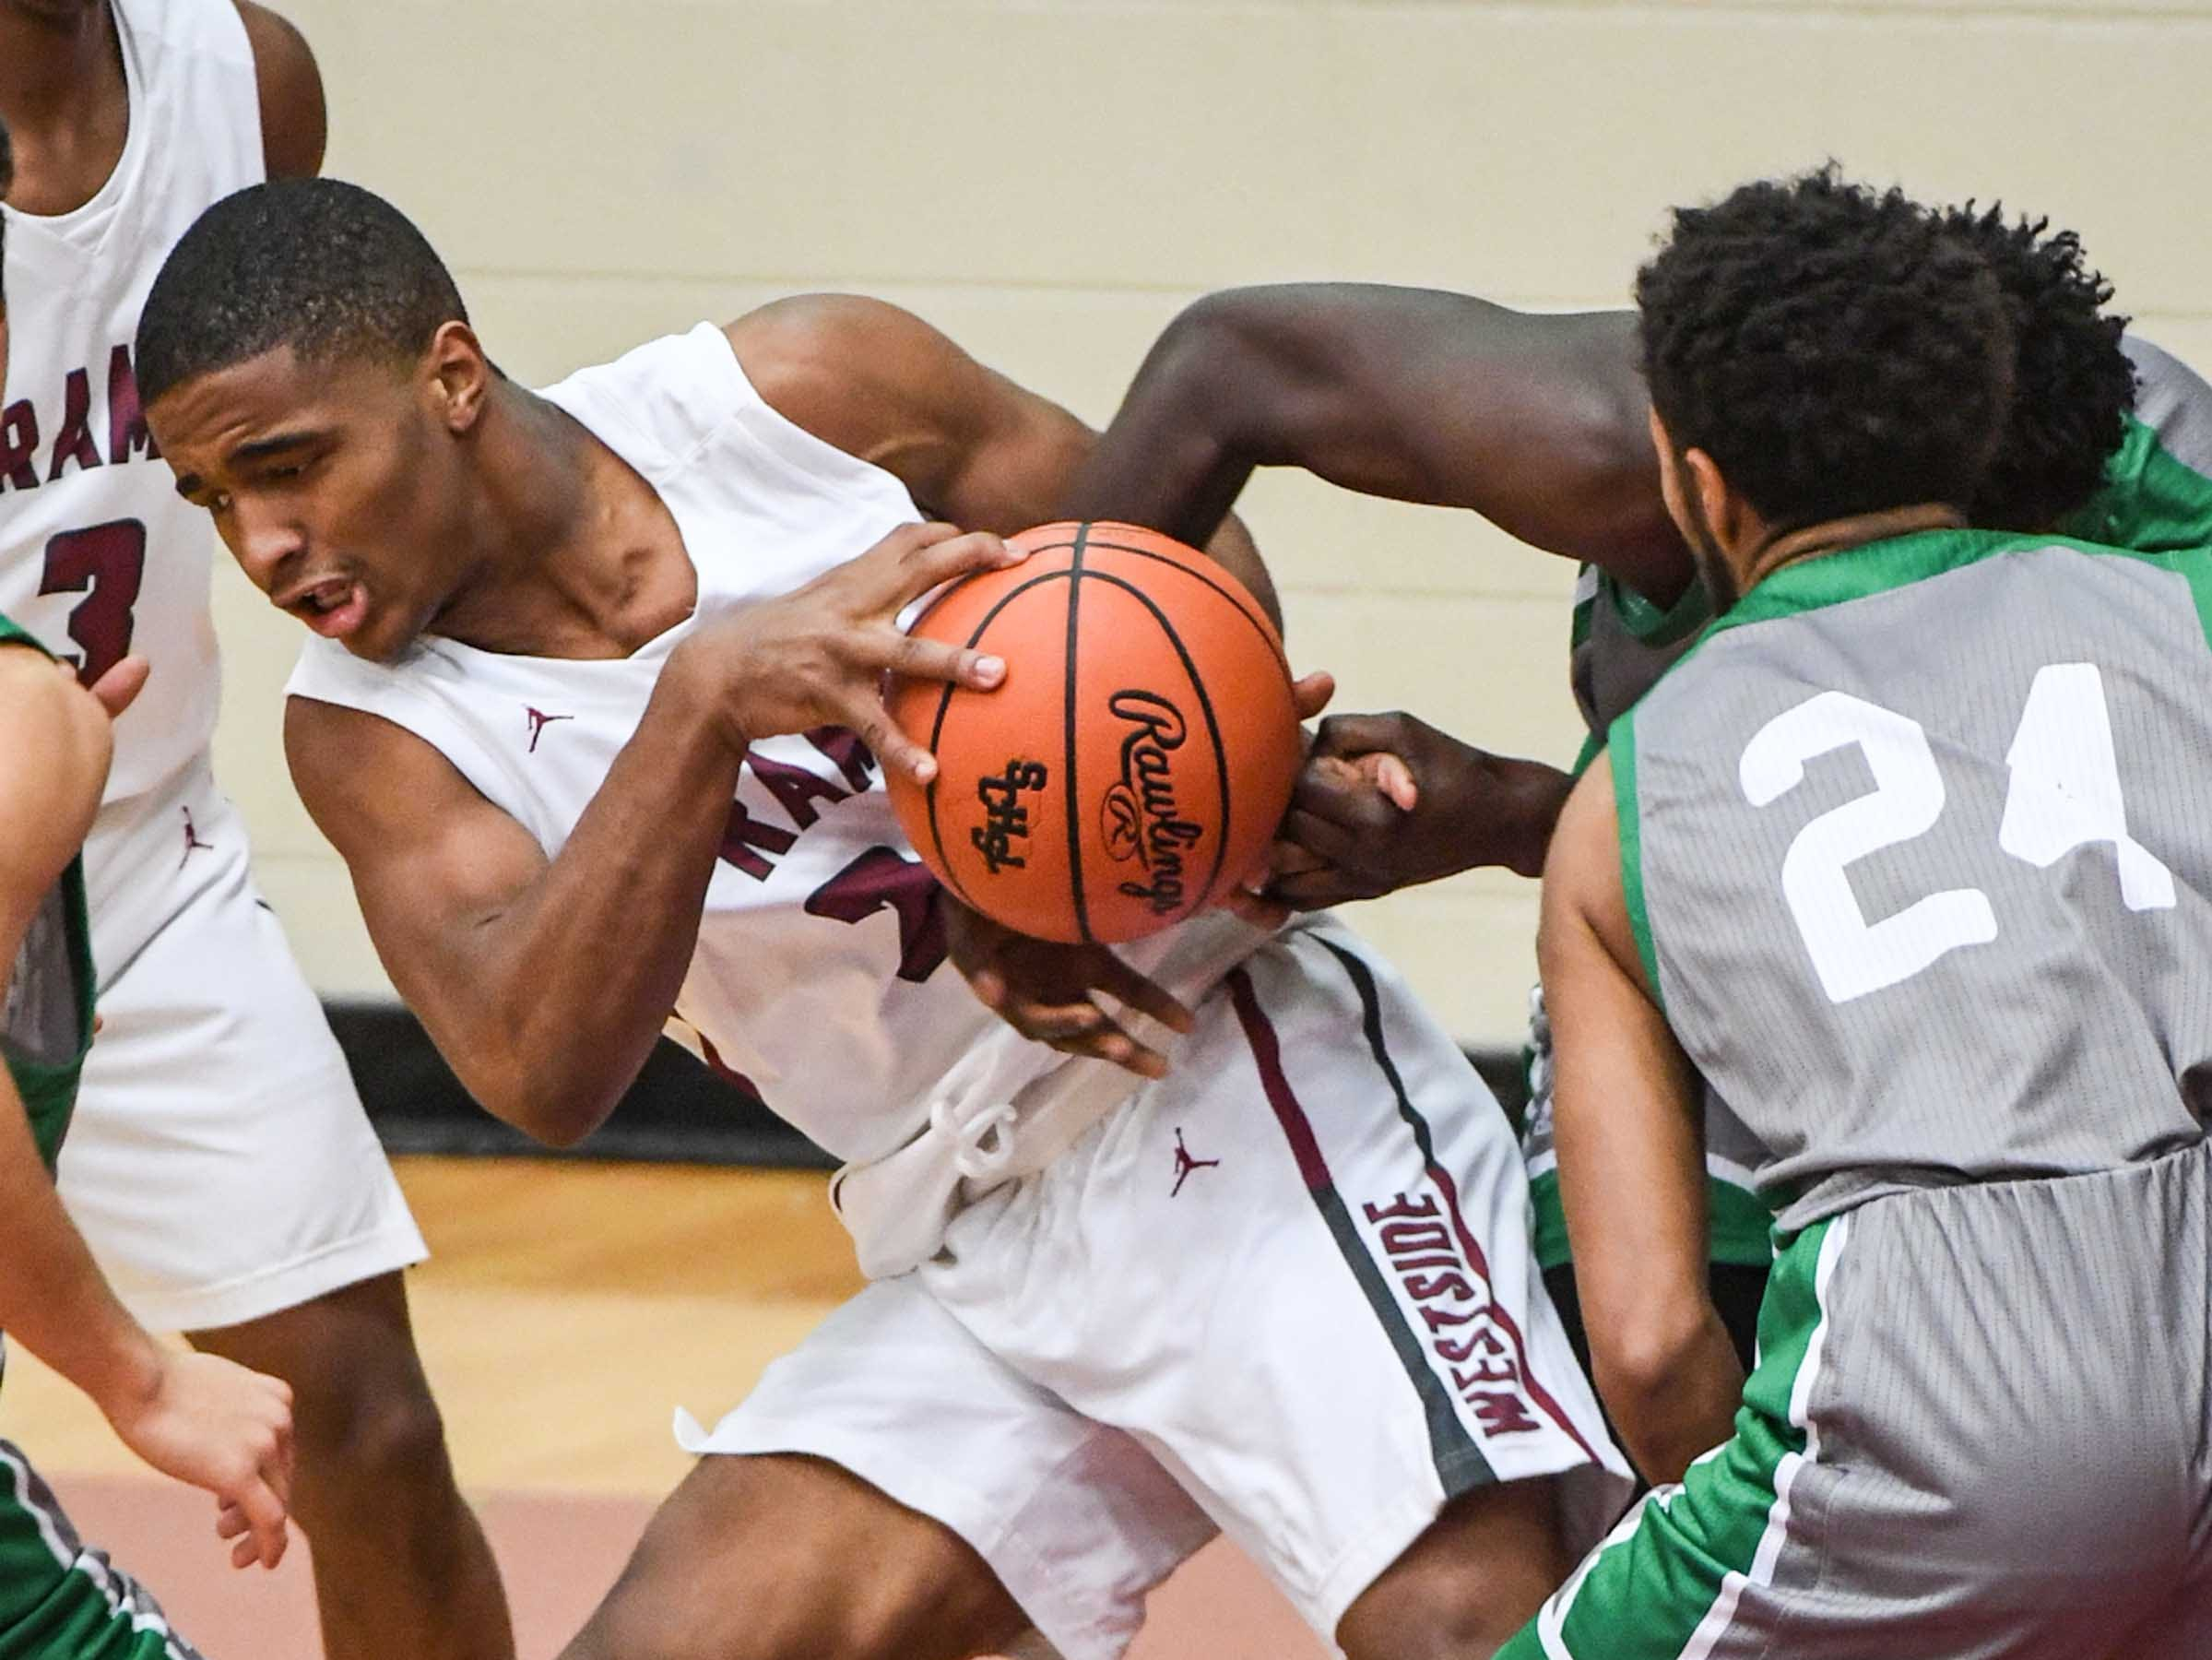 Westside senior Paul Johnson(23) rebounds near Easley junior Cameron Moore(24) during the first quarter at Westside High School in Anderson on Friday.